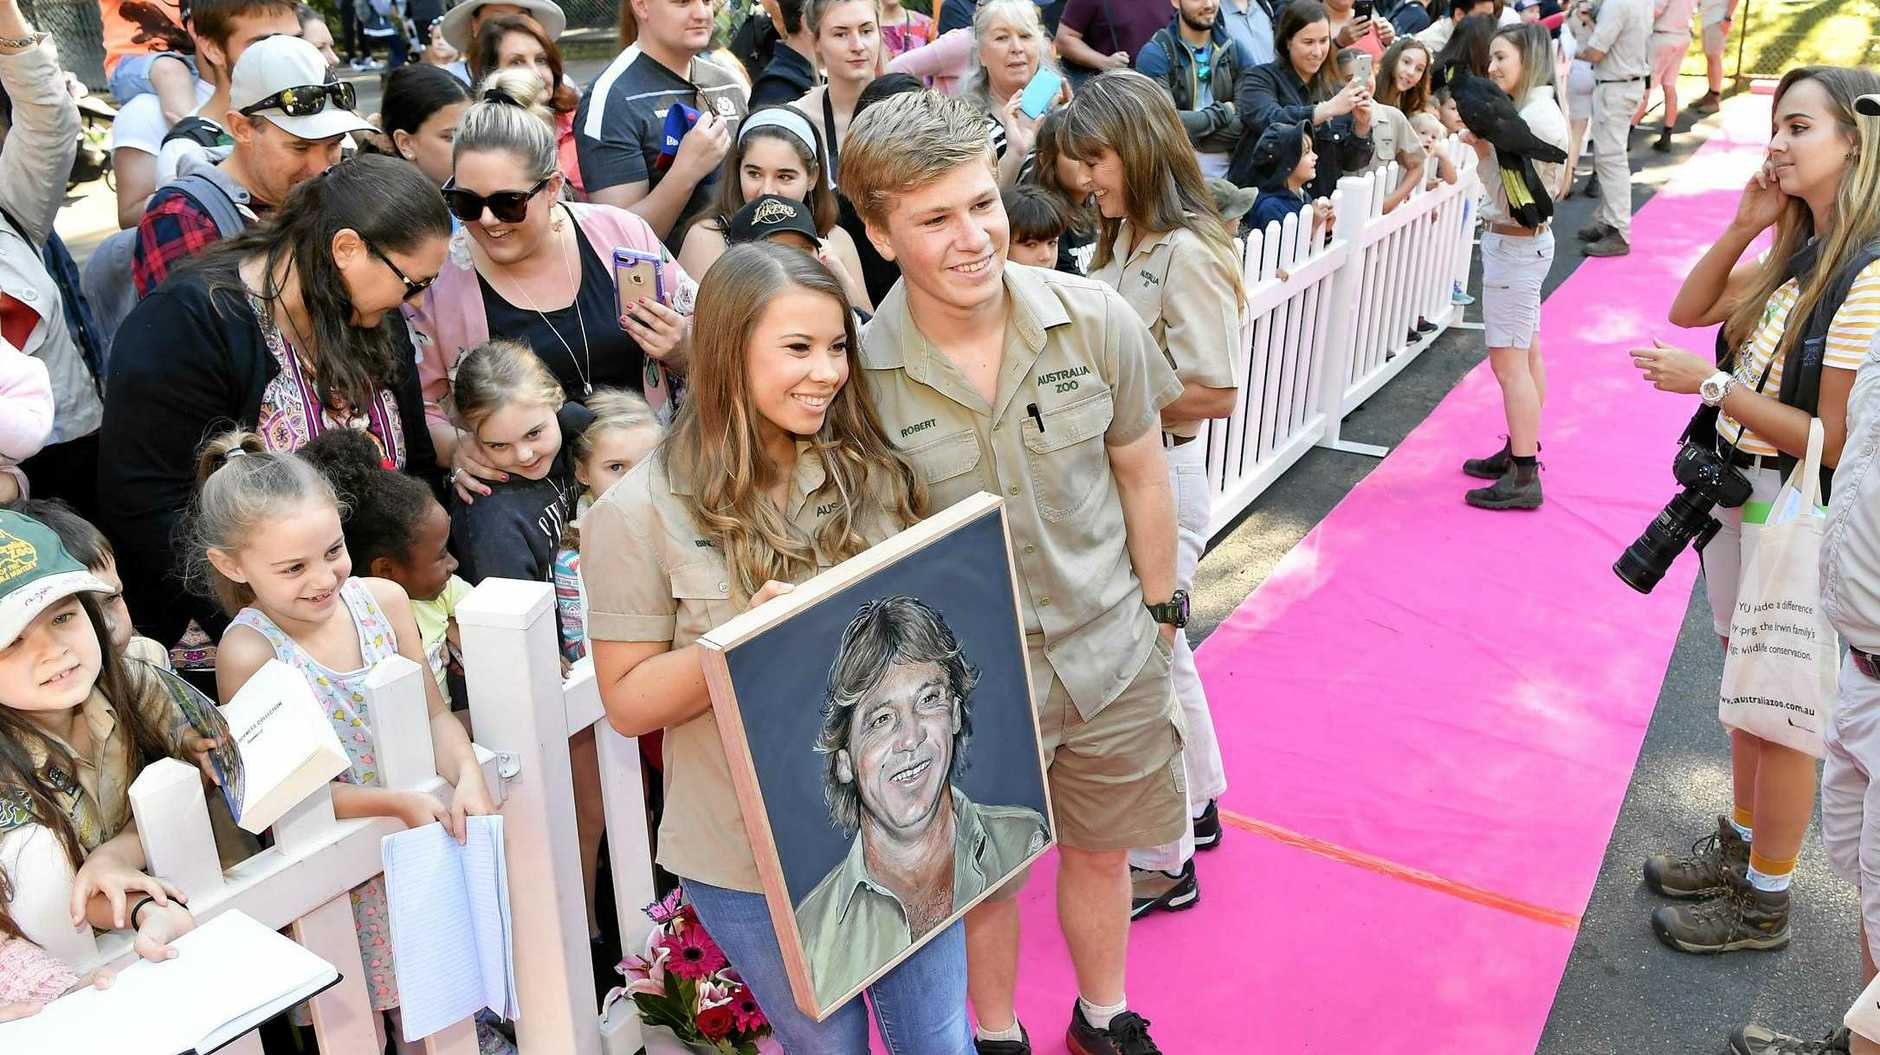 HAPPY BIRTHDAY: Celabrations at Australia Zoo as Bindi Irwin turns 21.